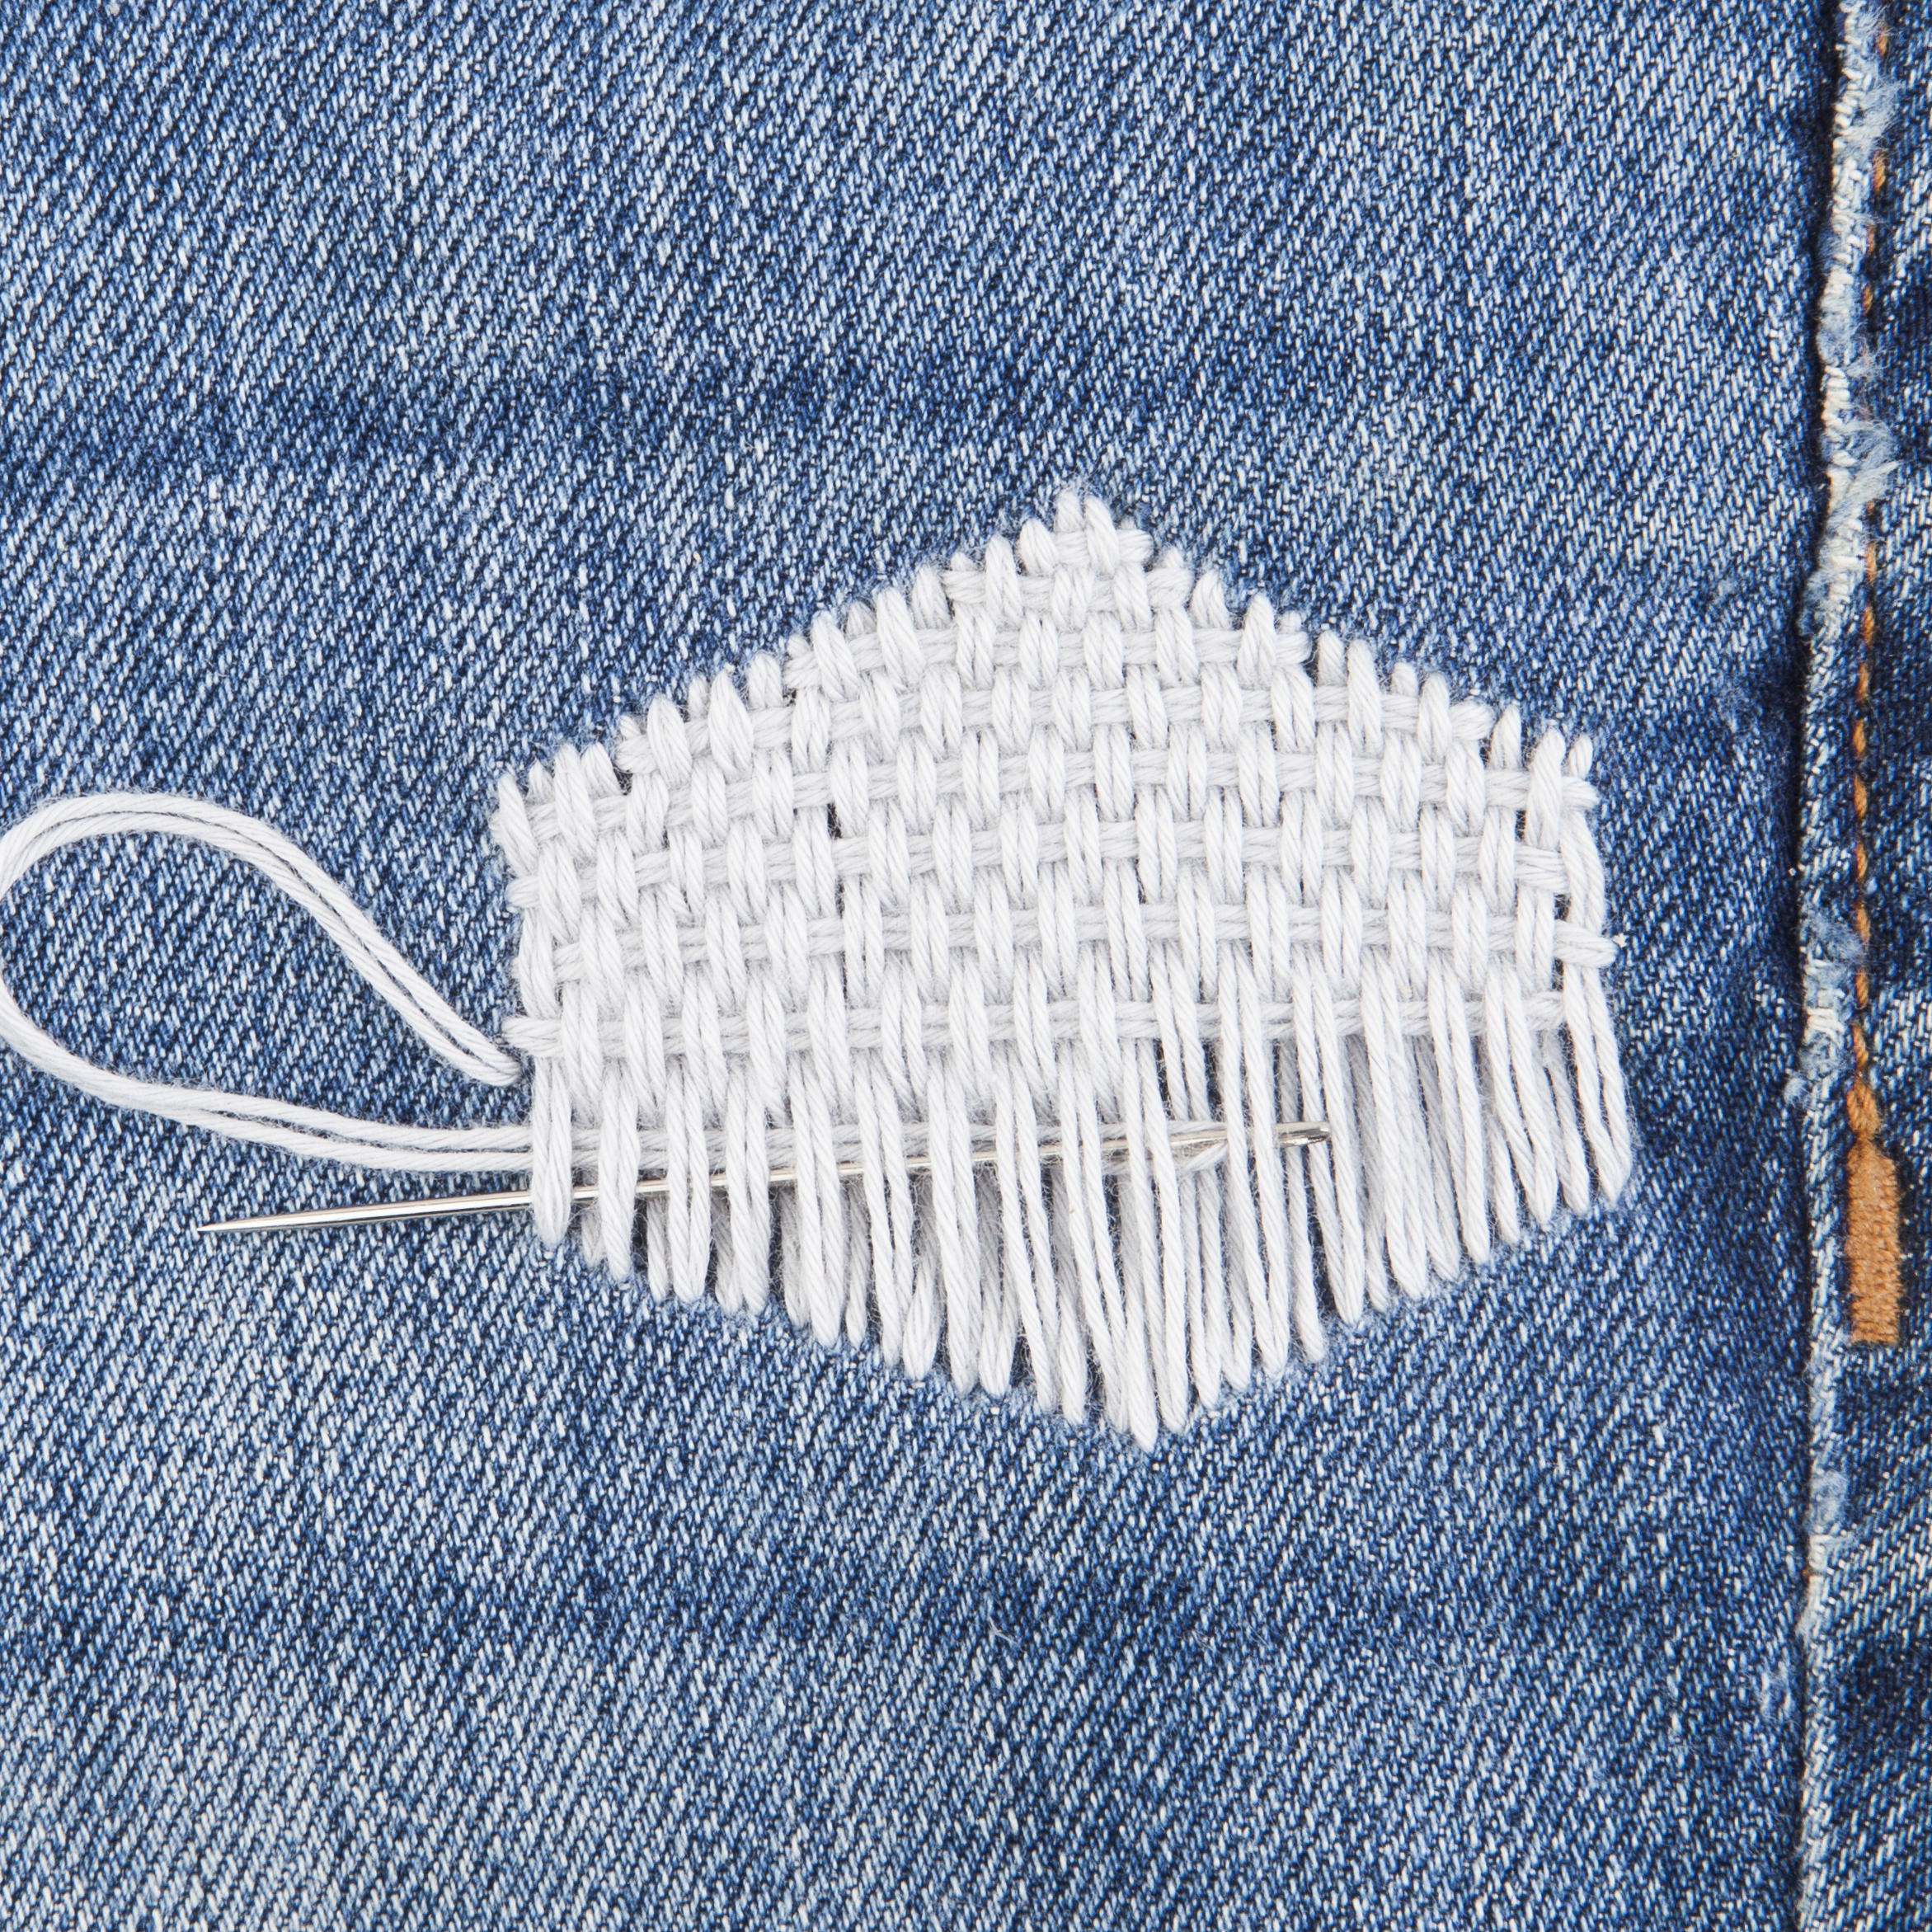 how to mend jeans.jpg